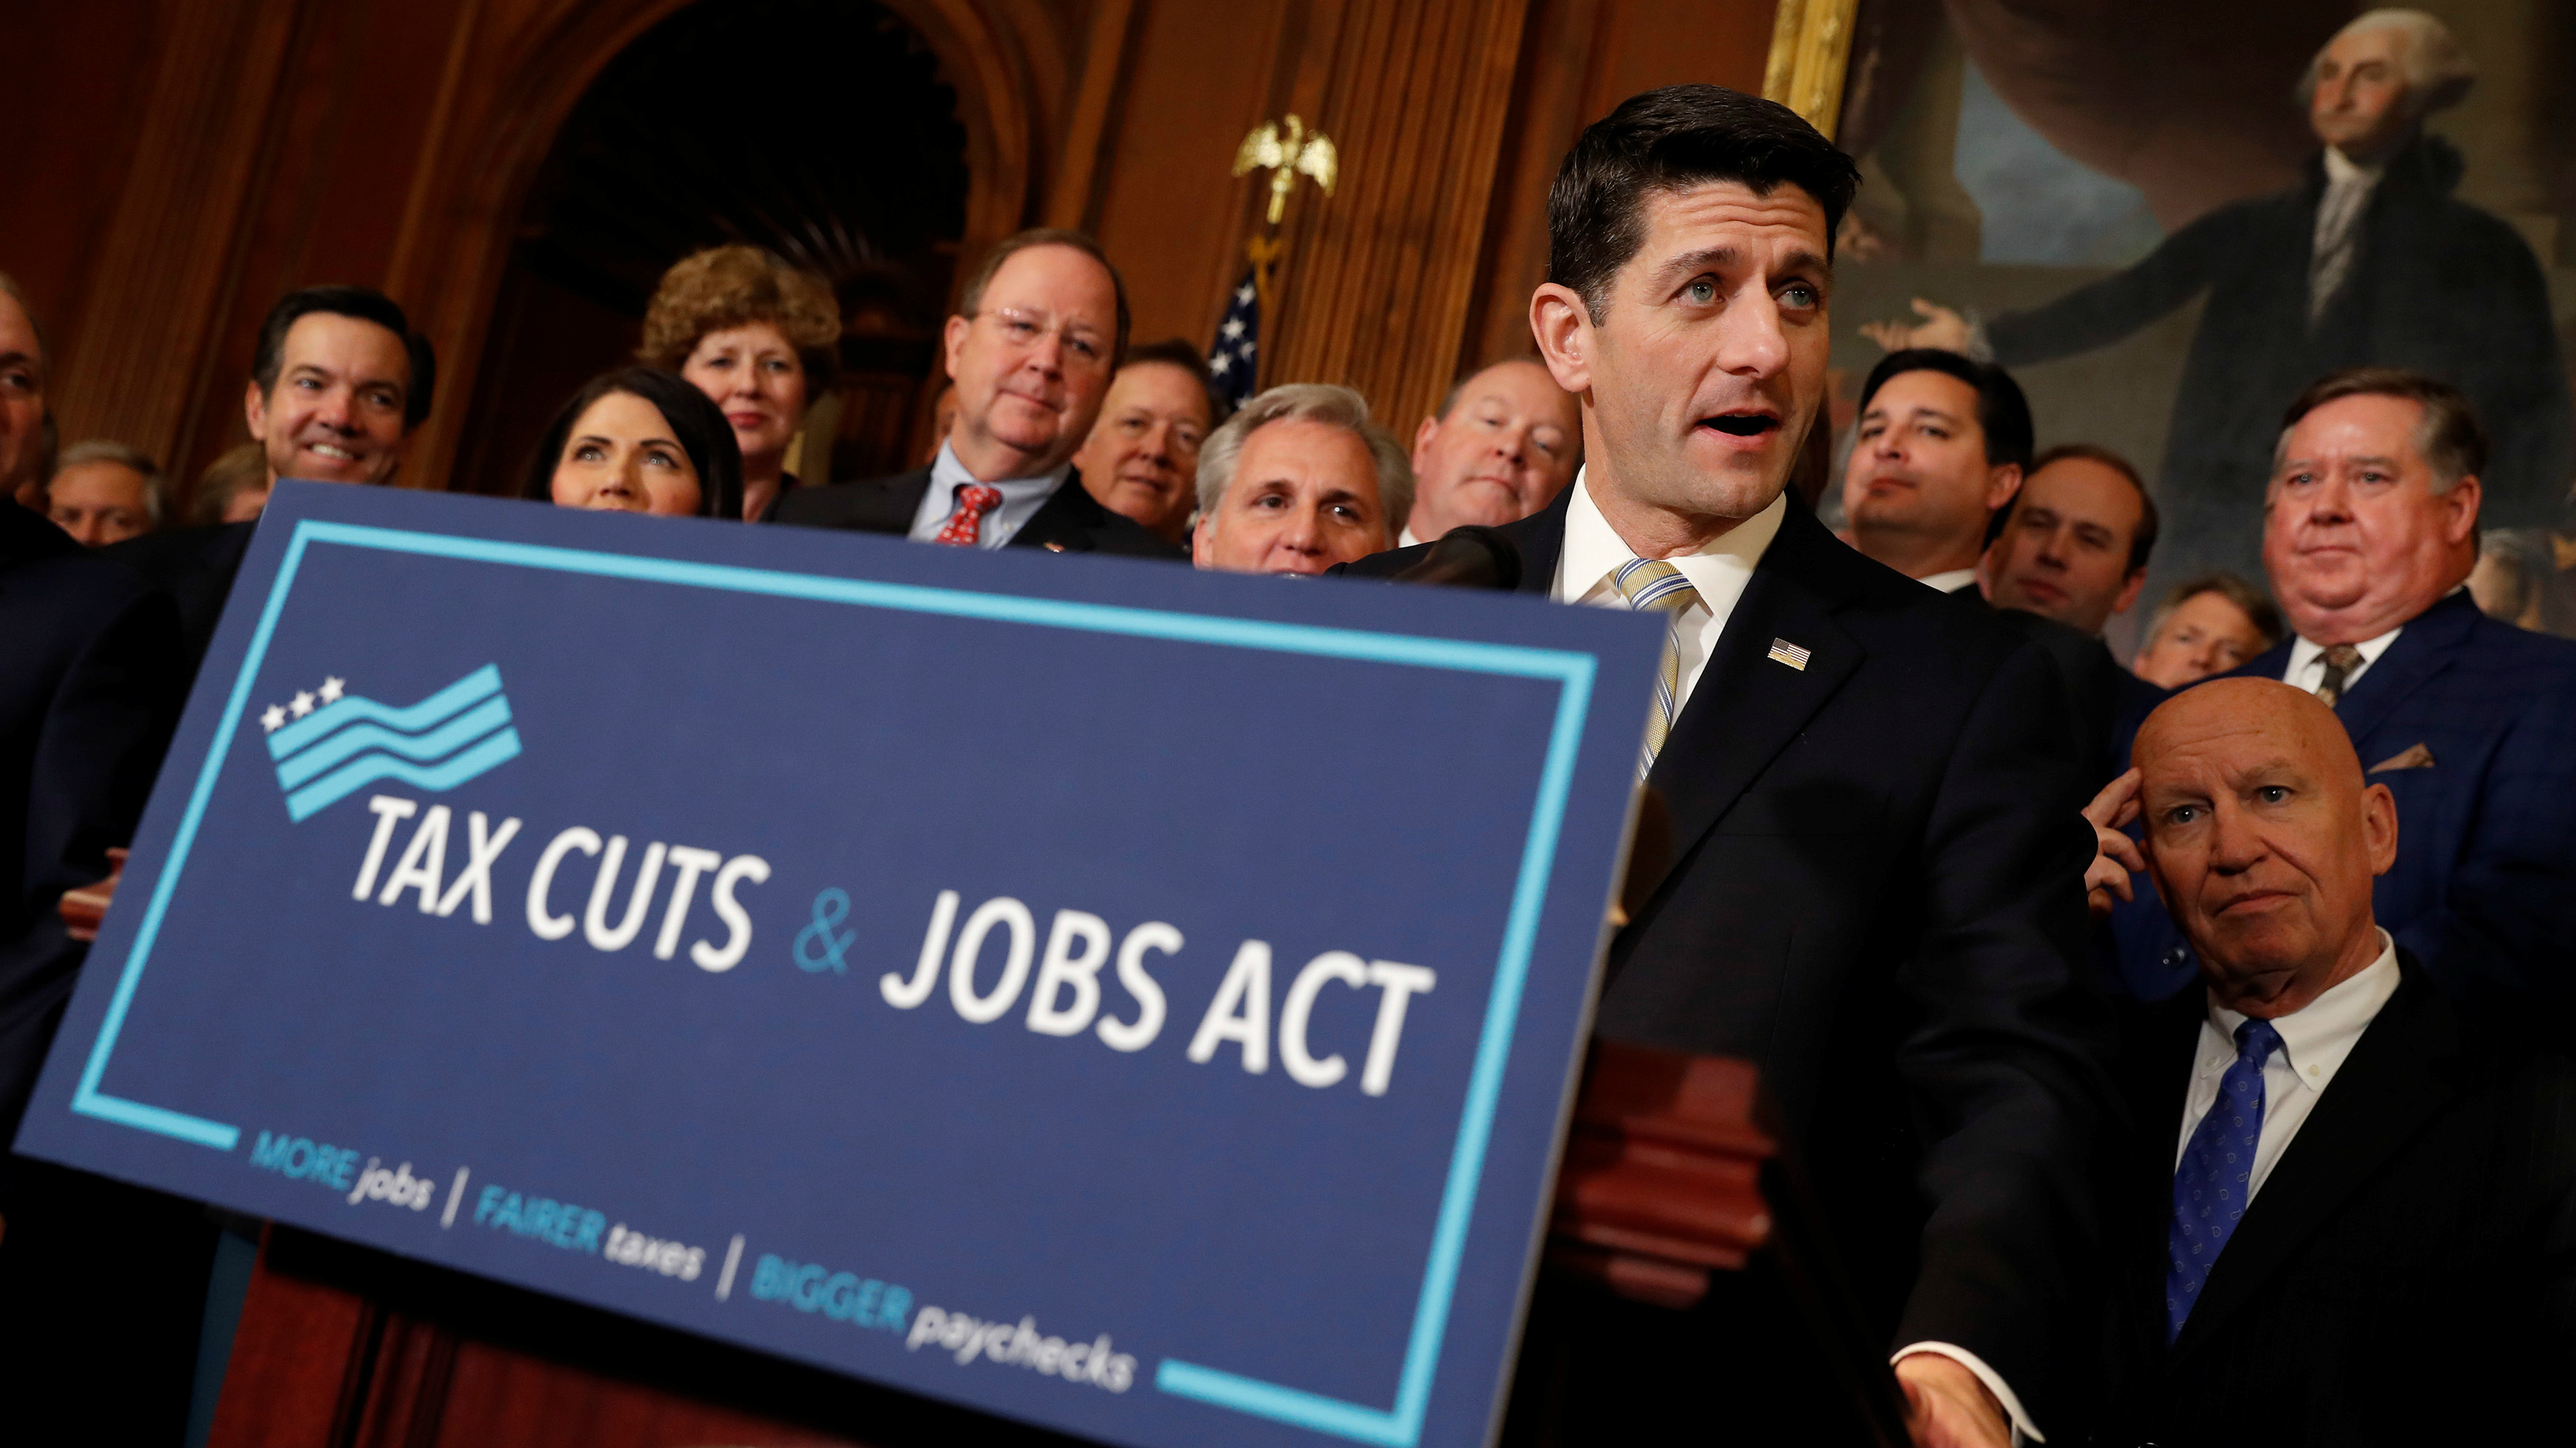 Paul Ryan next to a Tax Cuts and Jobs Act sign.